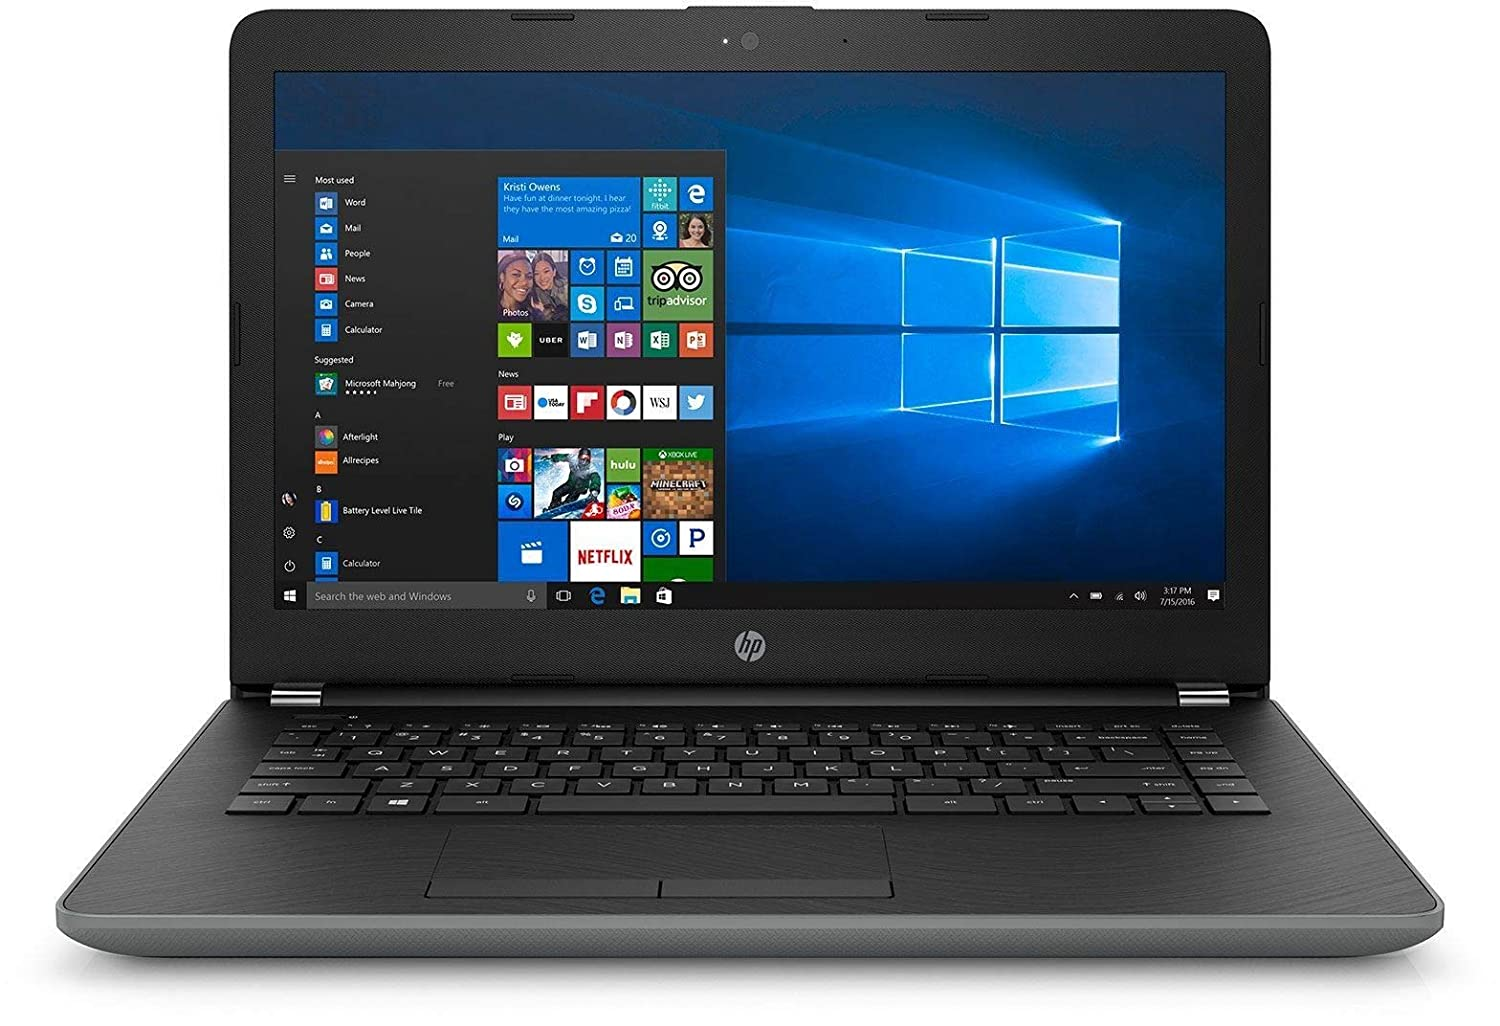 Buy Hp 14q Bu008tu 14 Inch Laptop 7th Gen Intel Core I5 Mdc300120151 Brushless Speed Controllers 1hp And Over 7200u 4gb Ddr4 1tb Windows 10 Home Hd Graphics Grey Online At Low Prices In